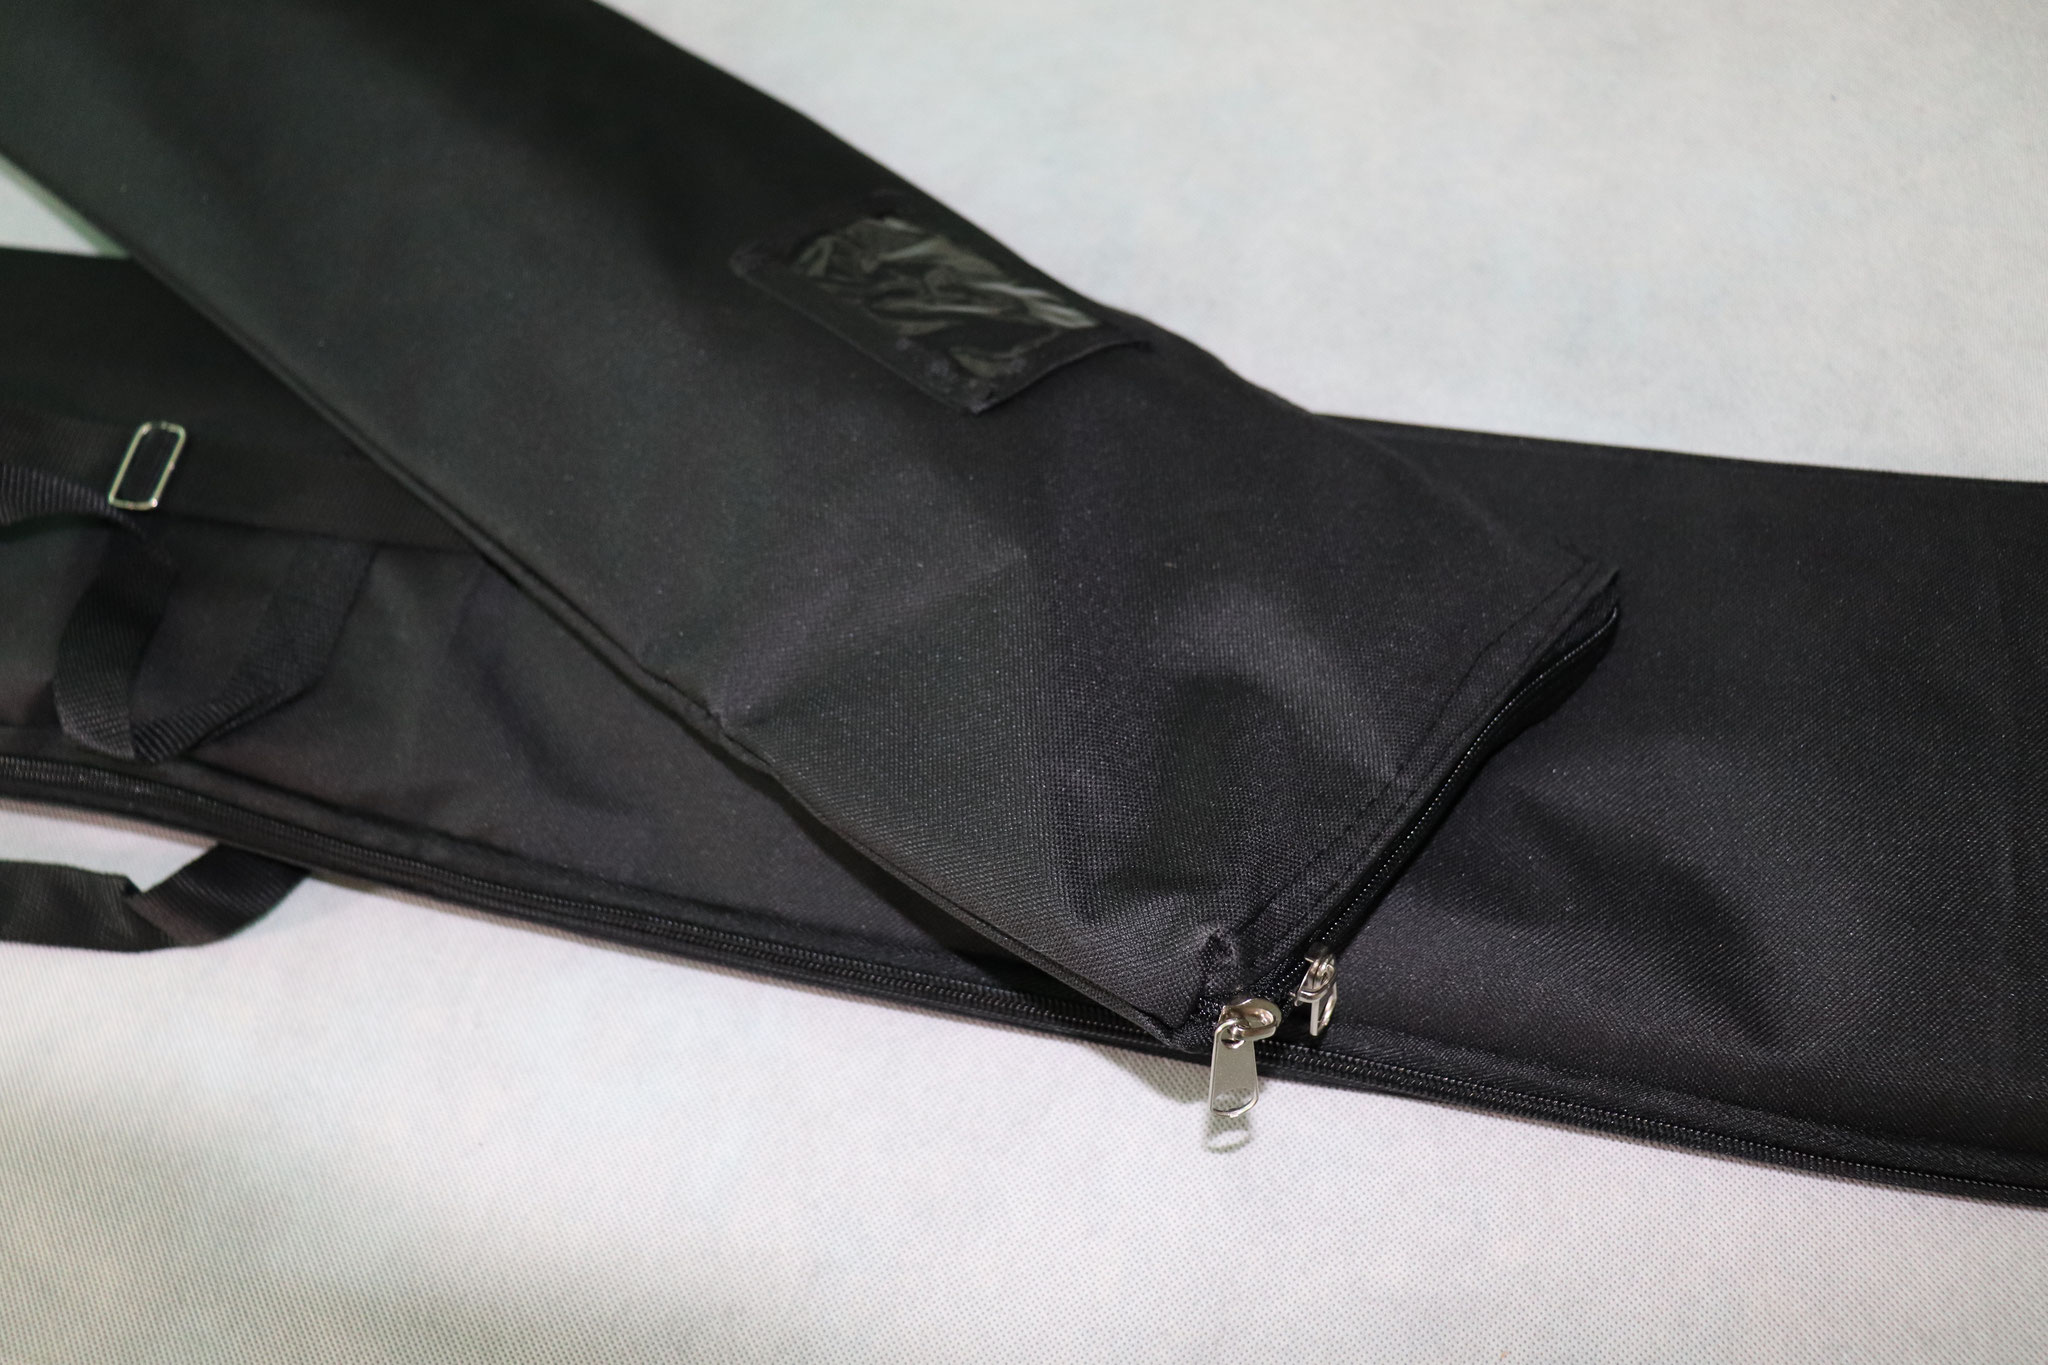 Fibrelight Printed Feather Flags - Double Zip & ID Pocket Bags